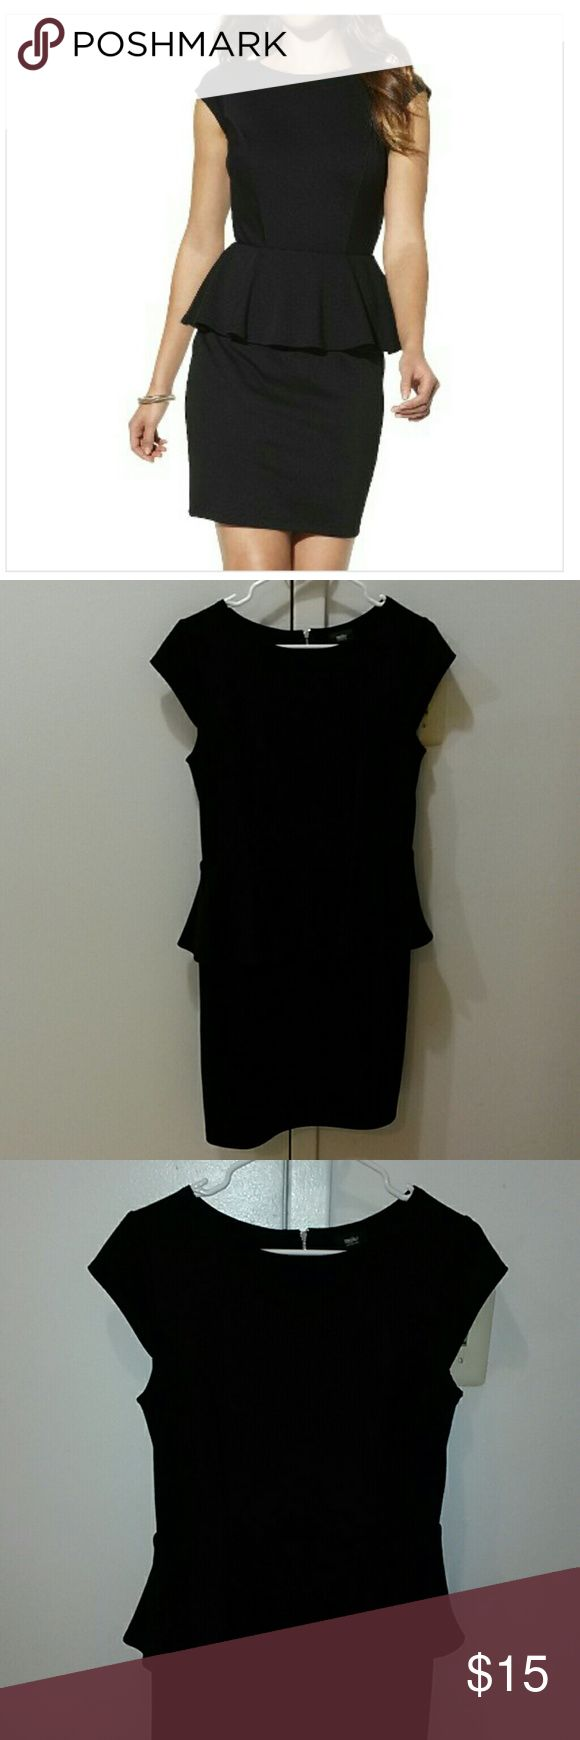 Mossimo Black Peplum Dress NWOT, zero defects. Tried on at home and just never got around to wearing it. Stretchy material, very figure - friendly and forgiving. Measurements upon request. Open to reasonable offers. Thanks for looking! Mossimo Supply Co Dresses